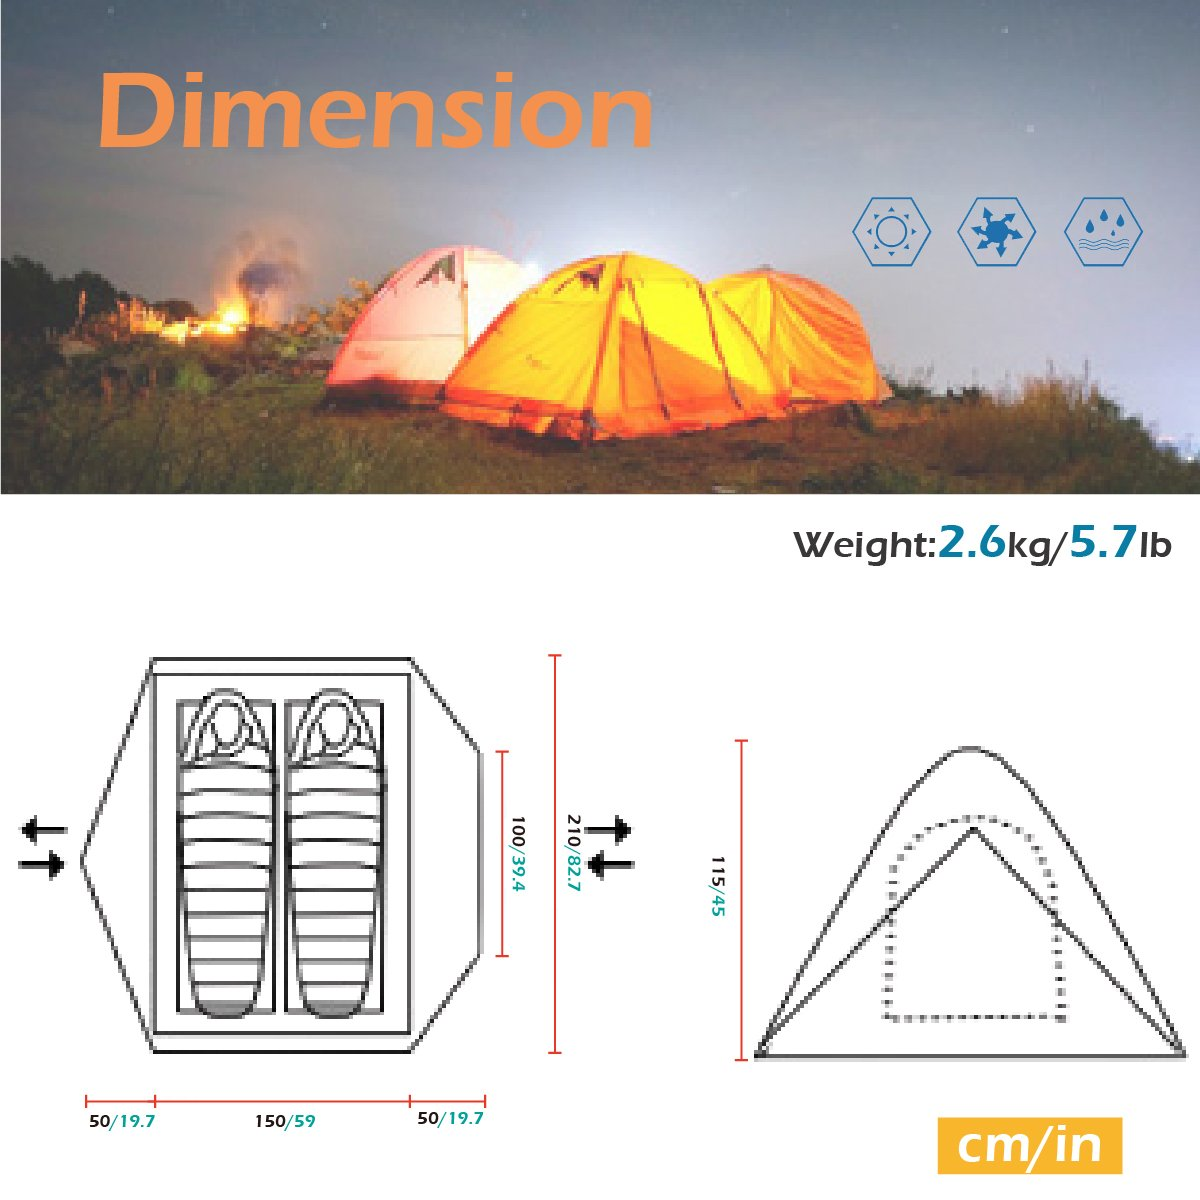 Azarxis 1 2 3 4 Person 3 4 Season Backpacking Tents Easy Set Up Waterproof Lightweight Professional Double Layer Aluminum Rod Tent for Camping Outdoor Hiking Travel